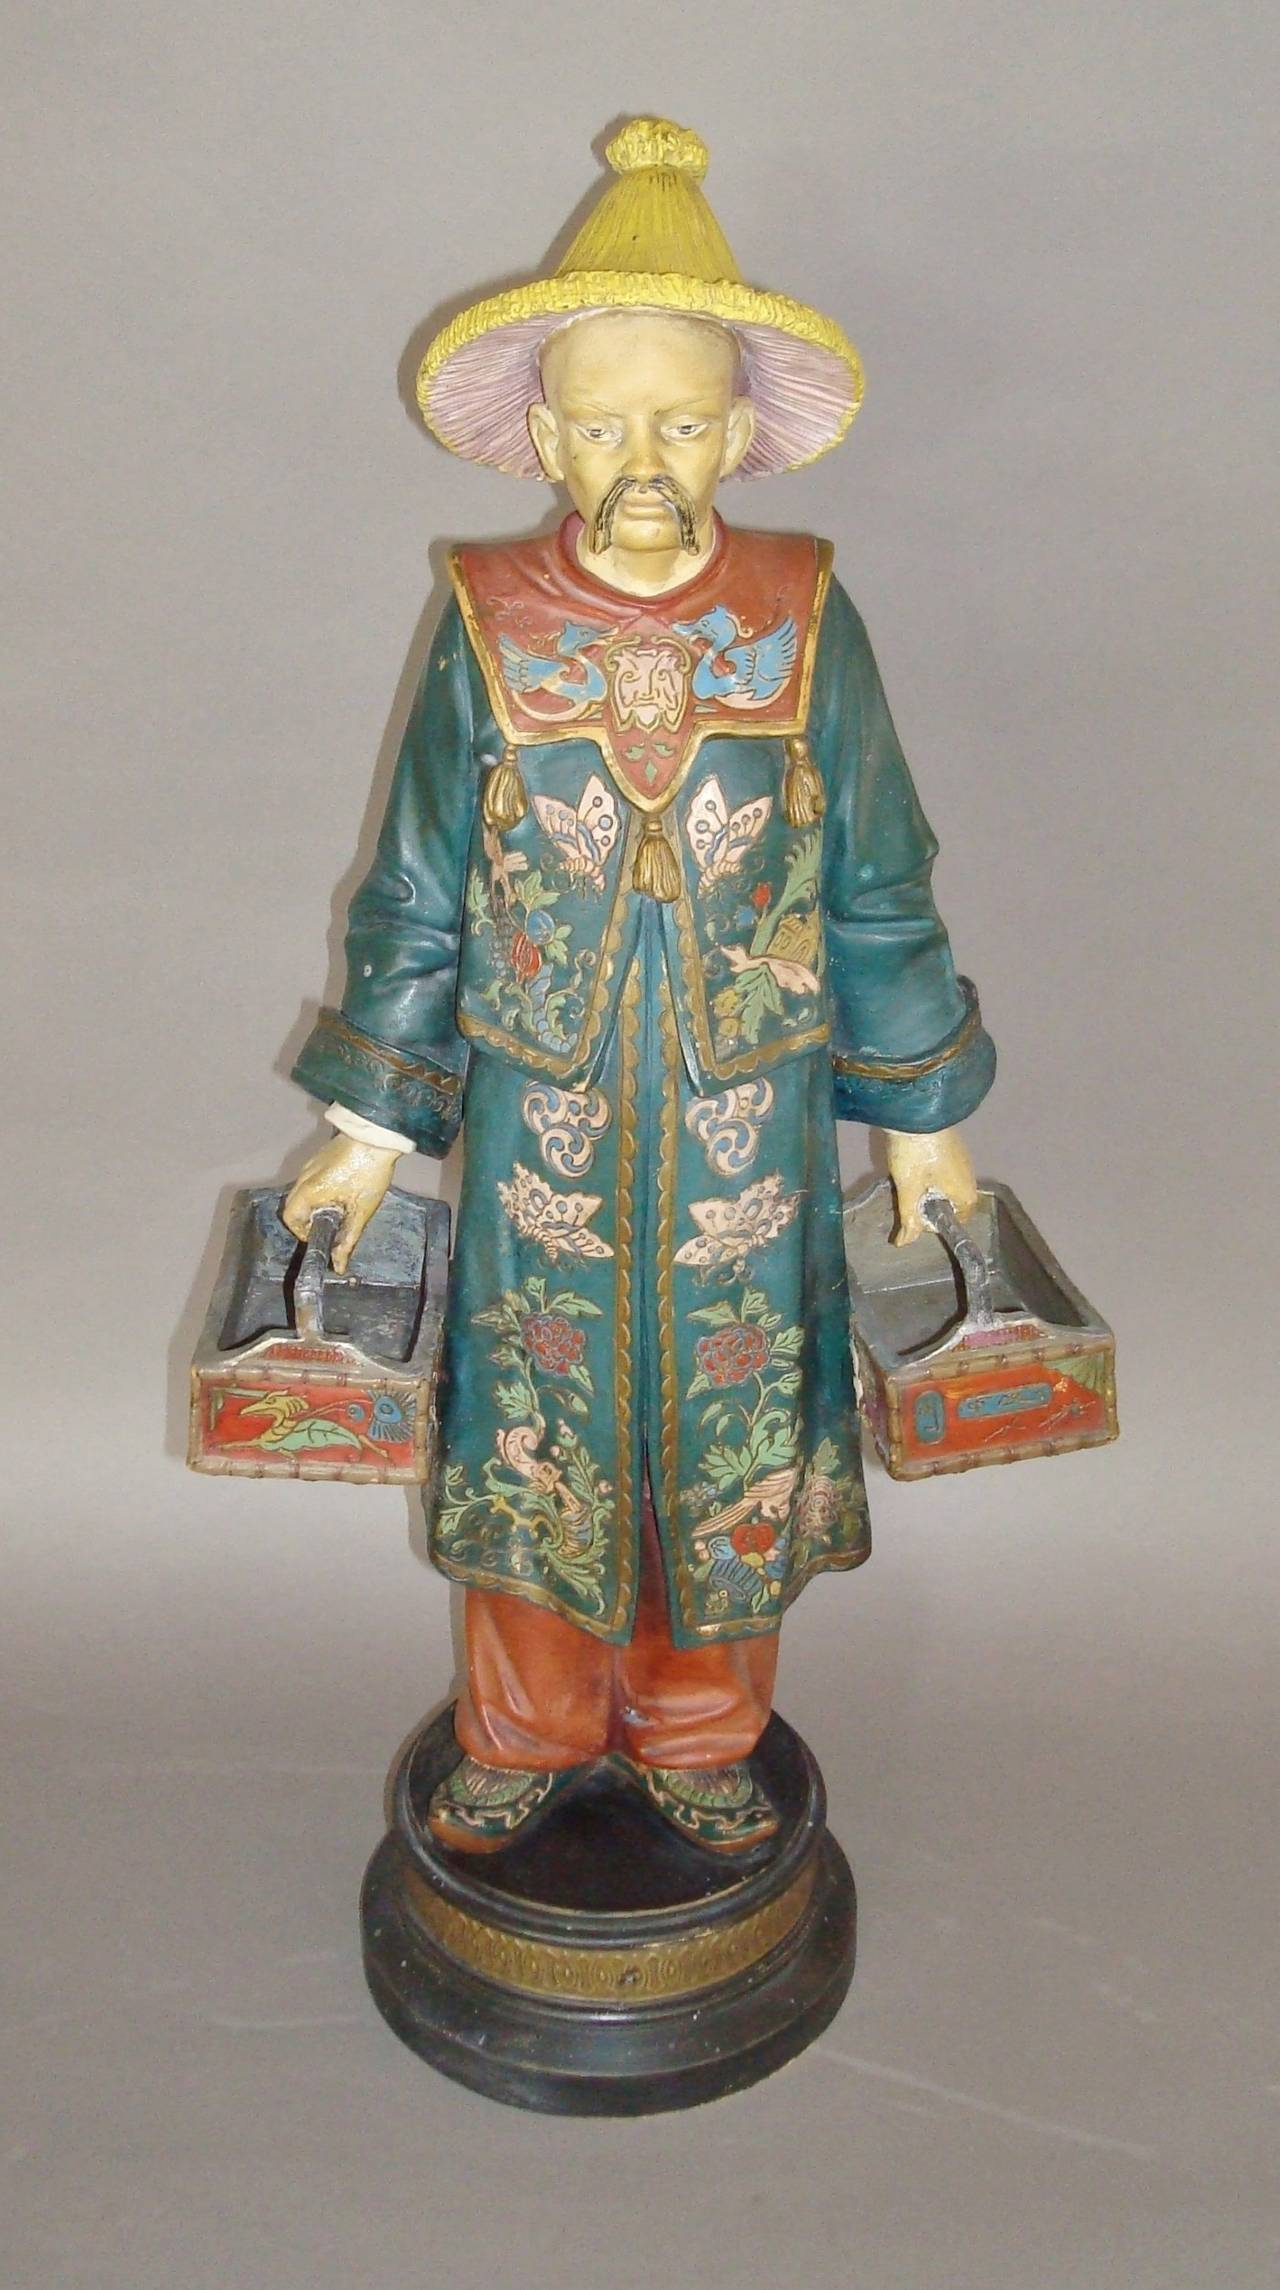 Chinoiserie 19th century Decorated Terracotta China Man Statue For Sale